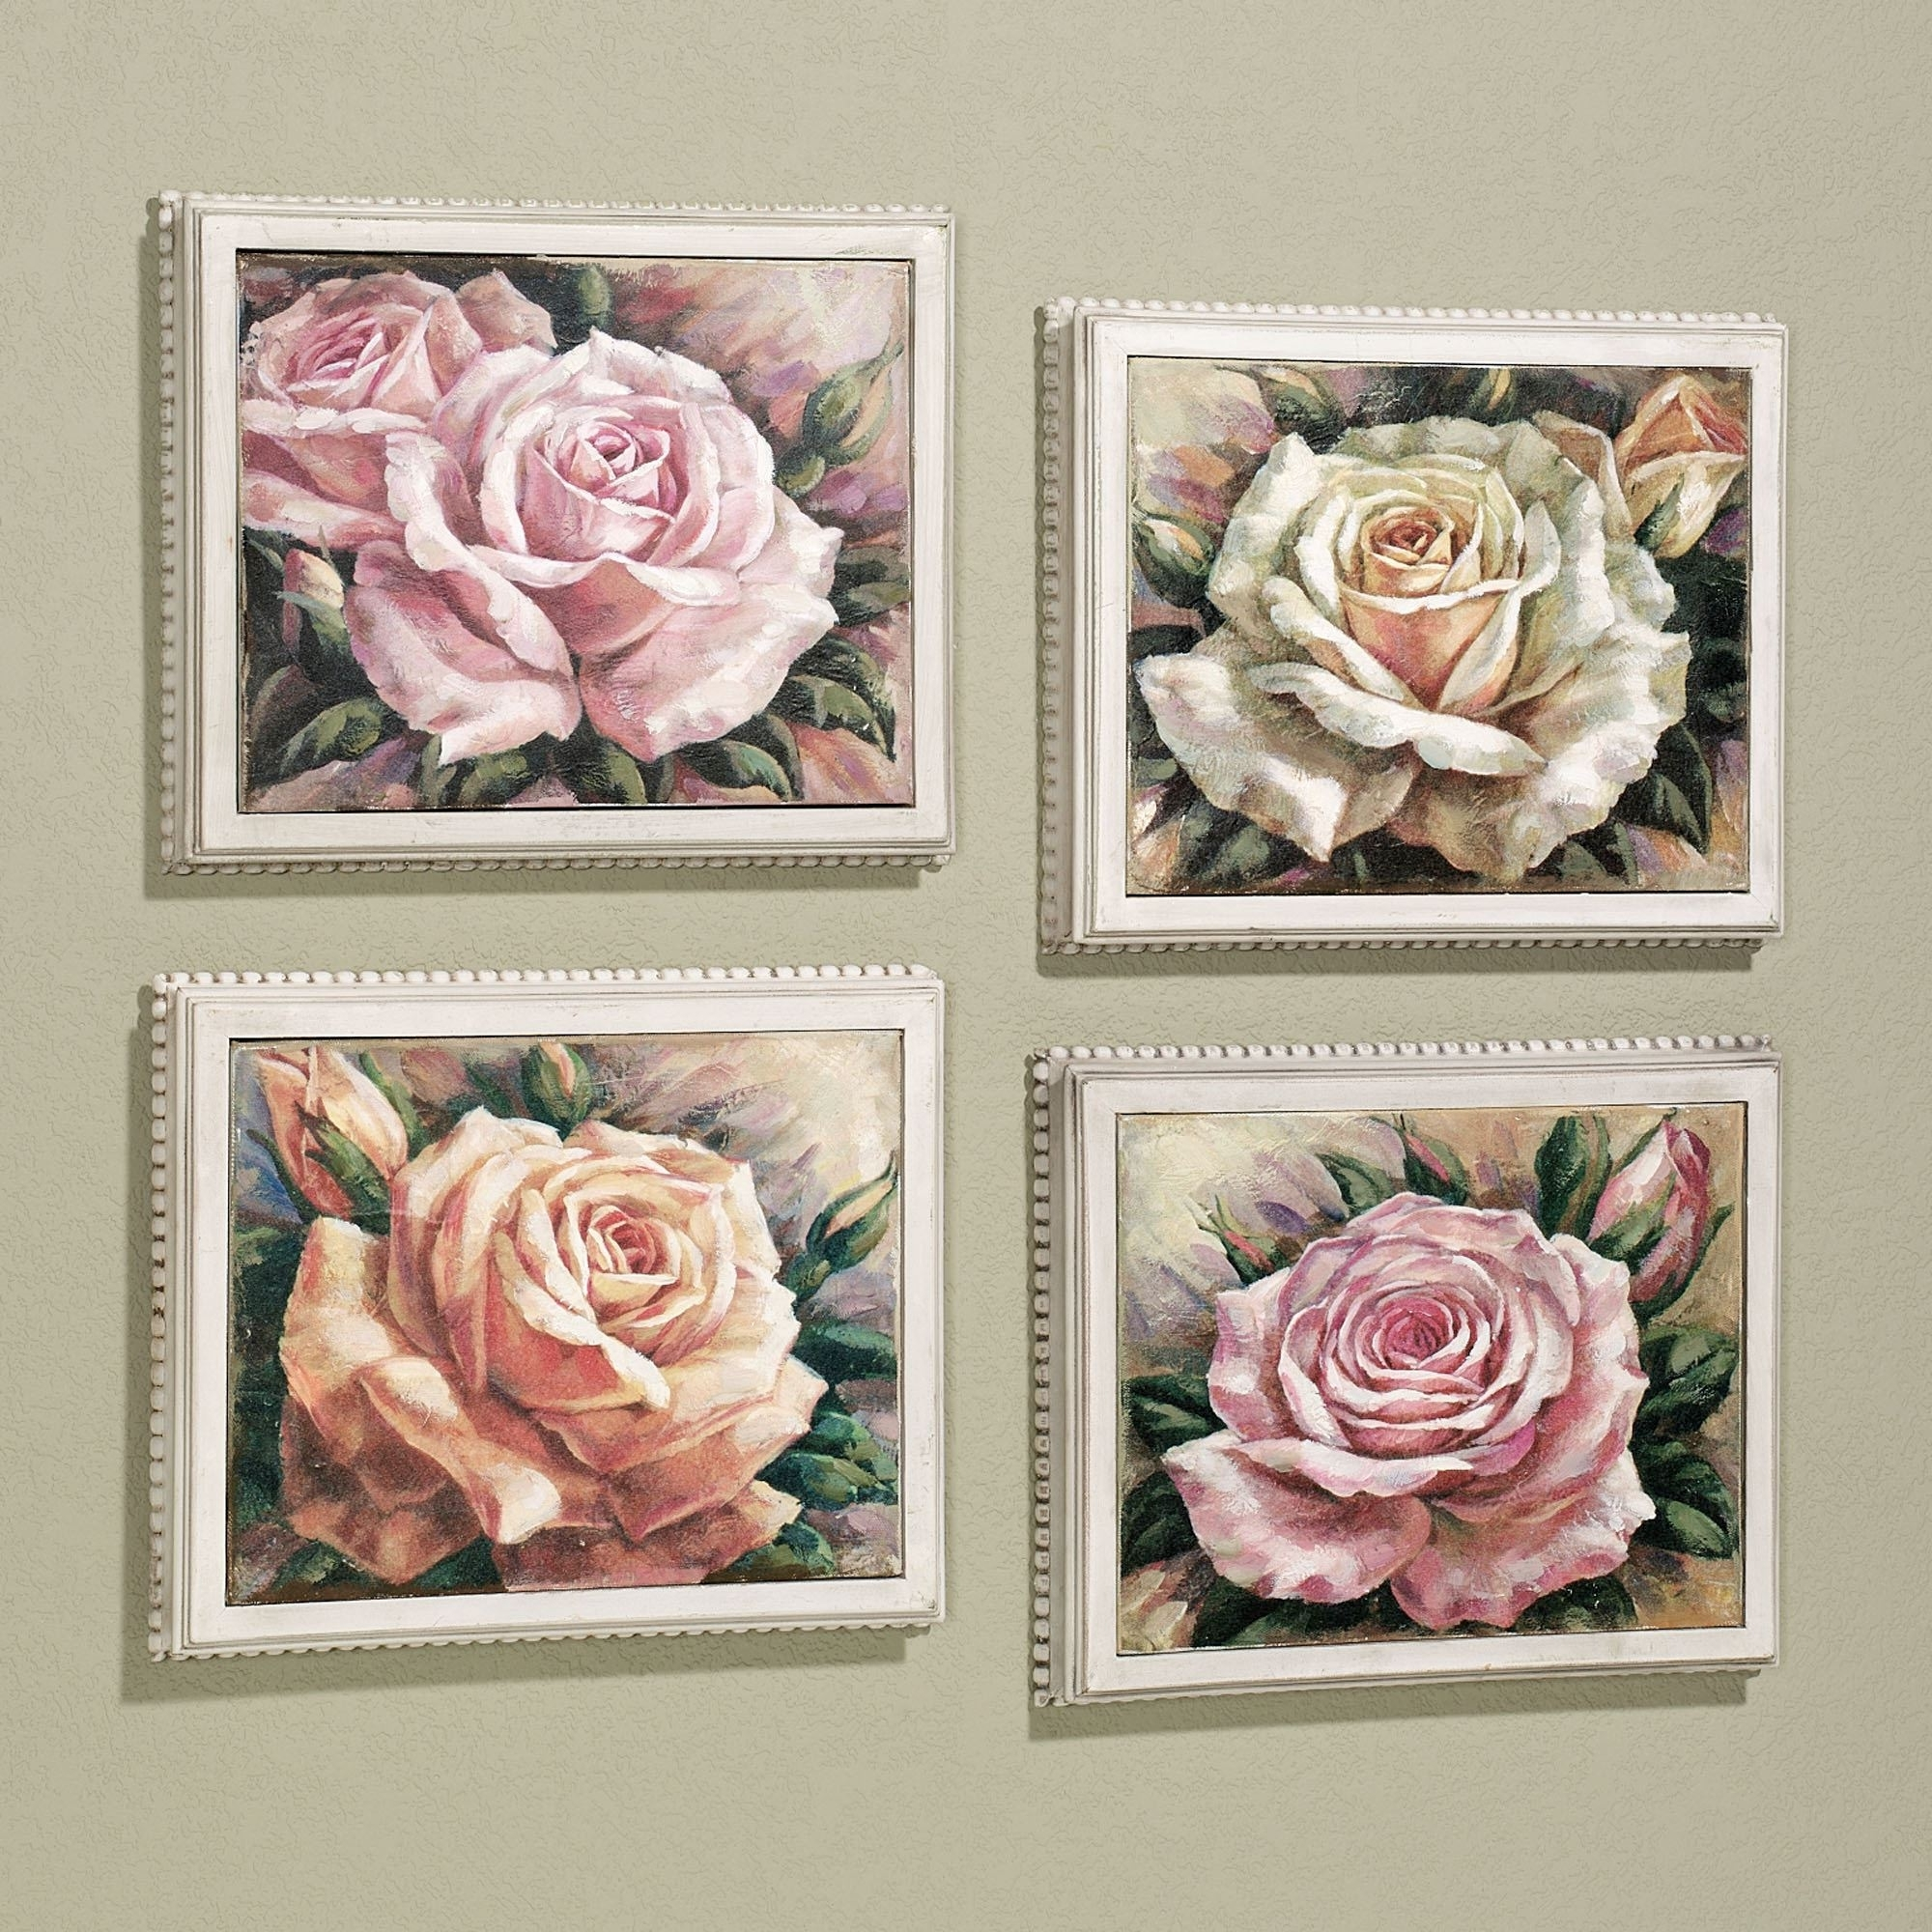 Roses Canvas Wall Art Regarding Most Recently Released Blooming Roses Framed Canvas Wall Art Set (View 9 of 15)